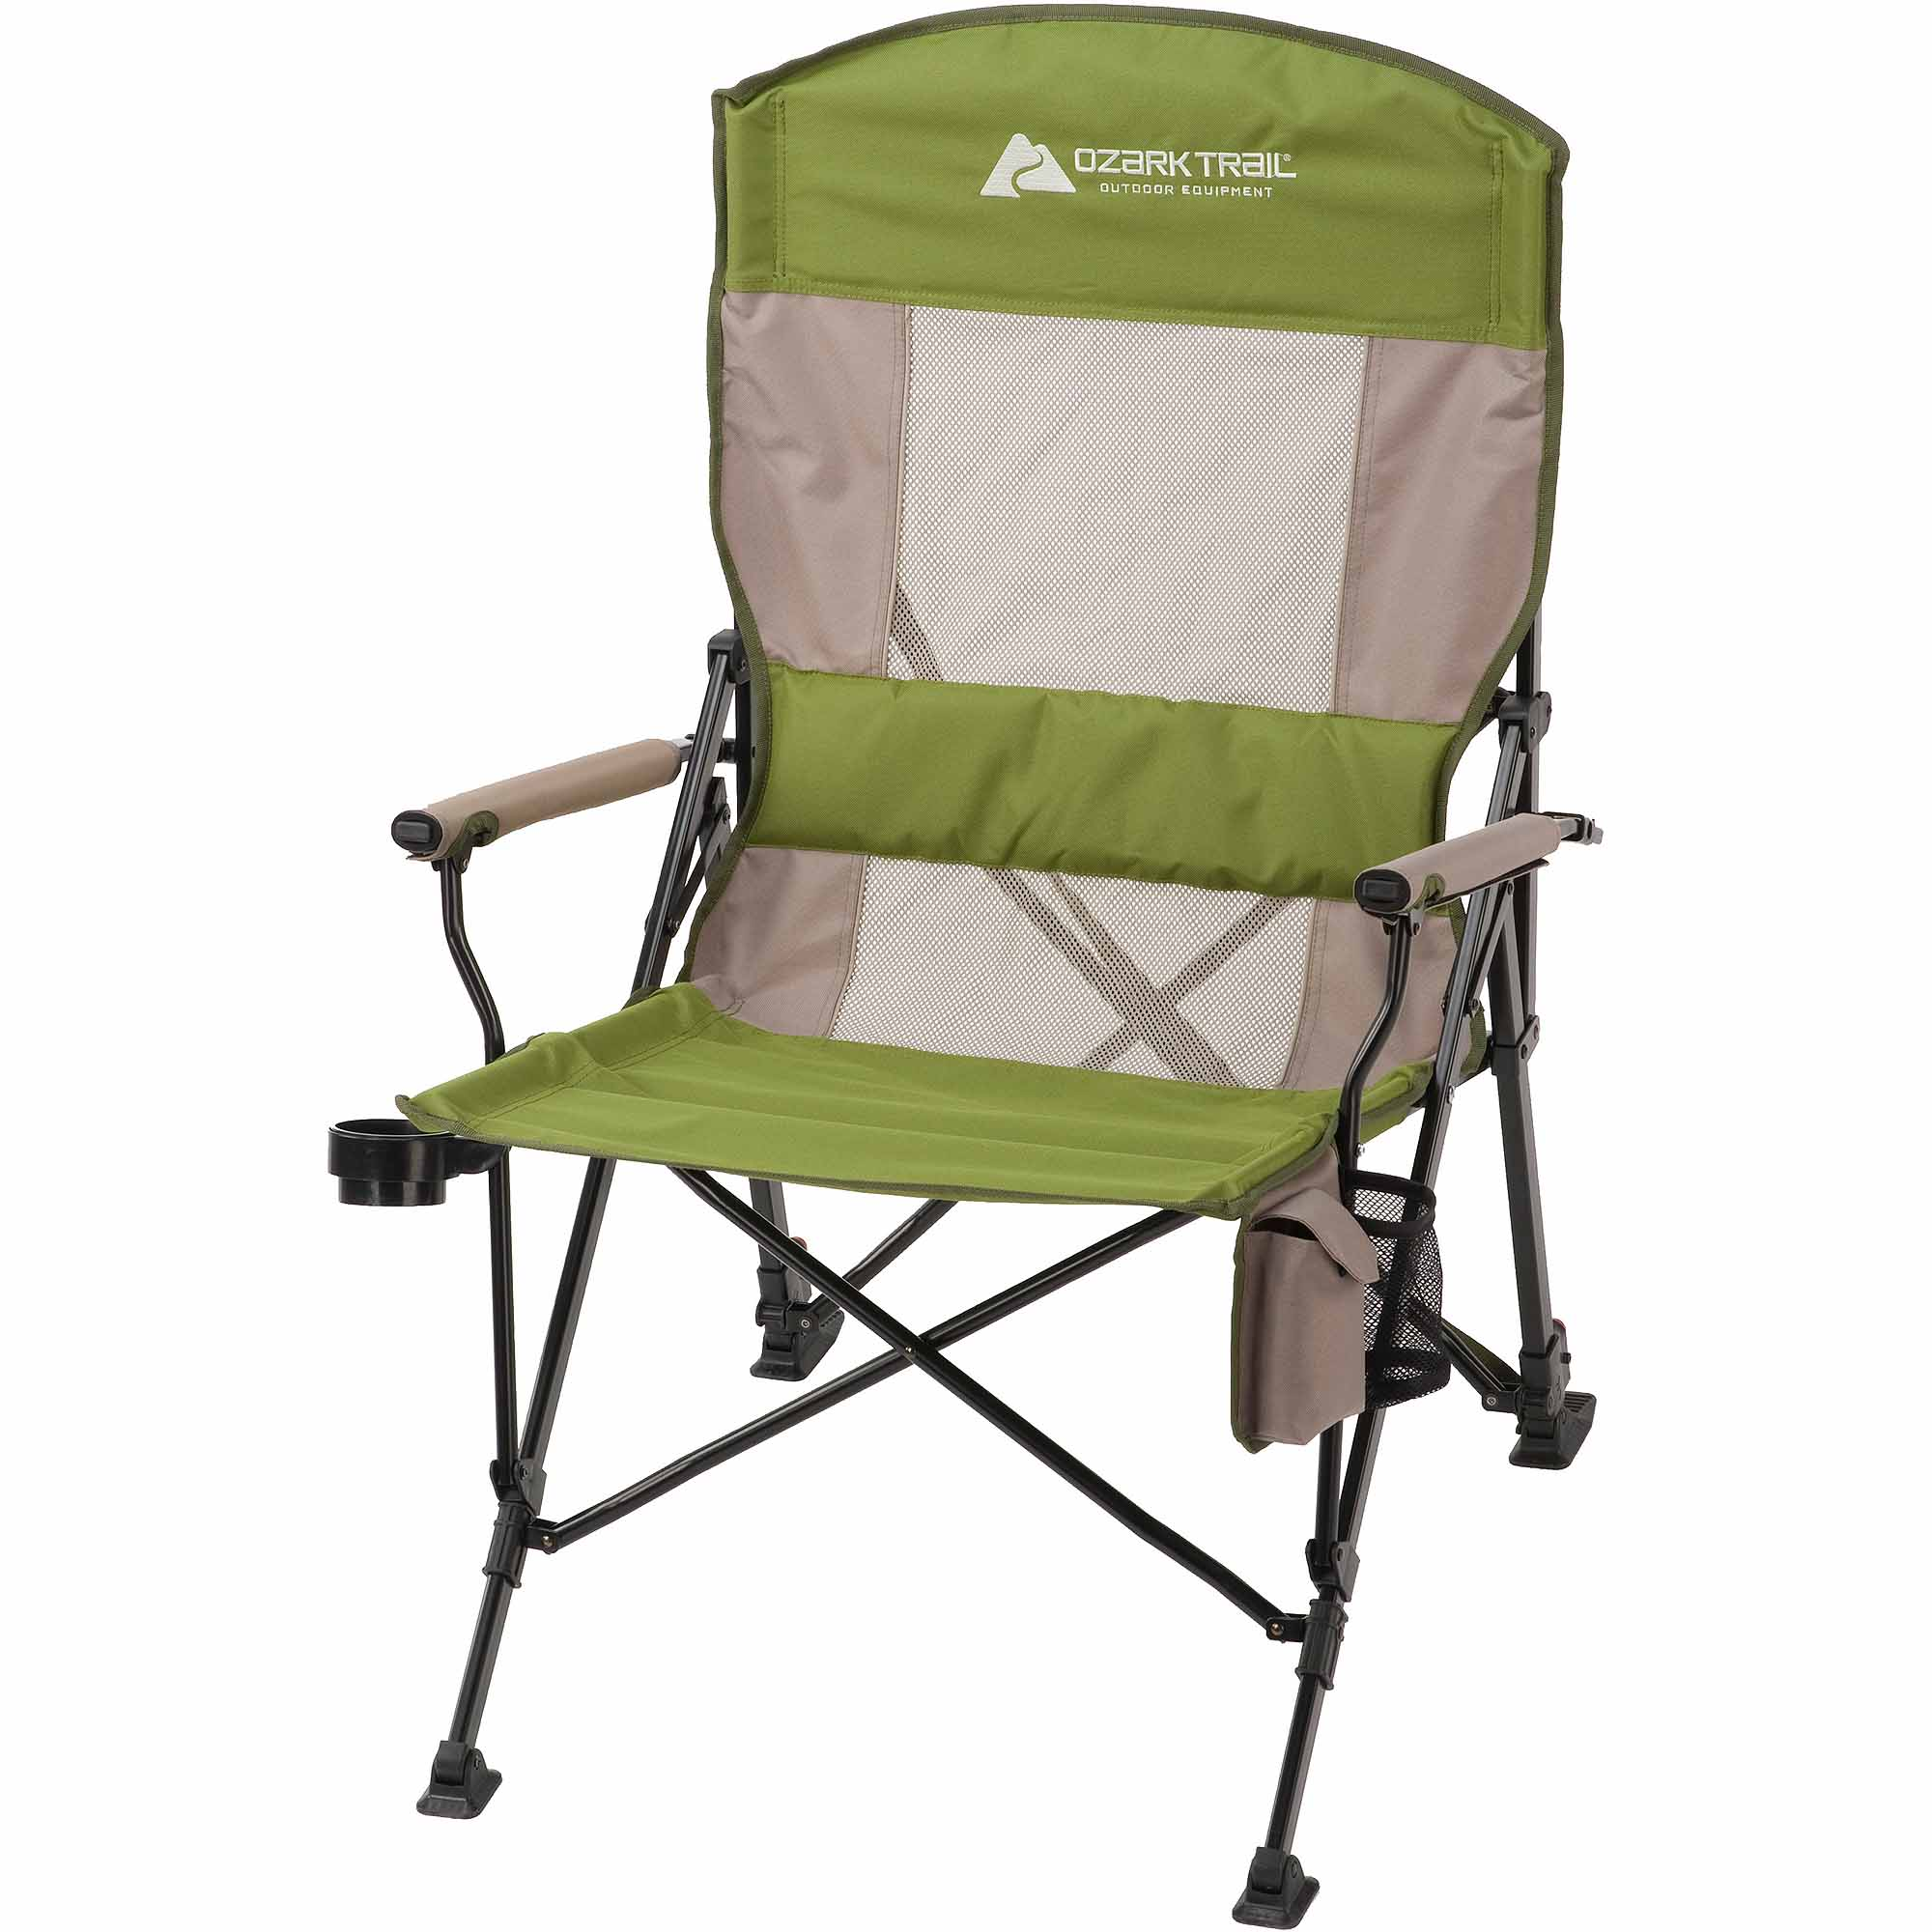 Ozark Trail Deluxe Oversize Hard Arm Chair With Reclining Back And  Adjustable Legs, Green   Walmart.com